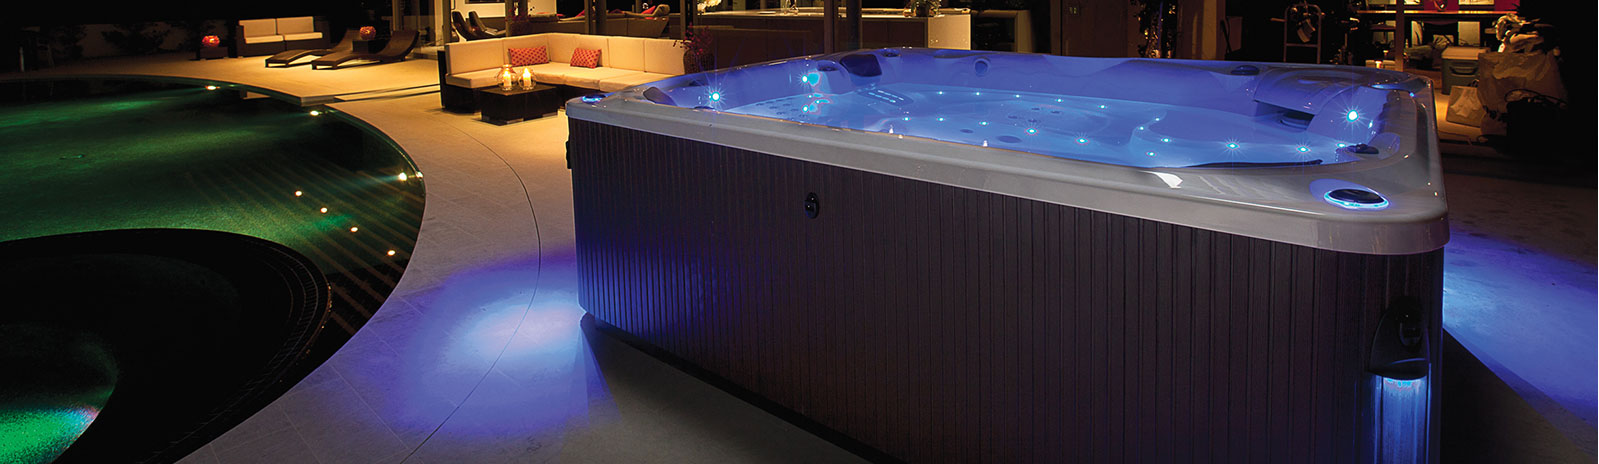 Led Lighting Systems Spring Dance Hot Tubs